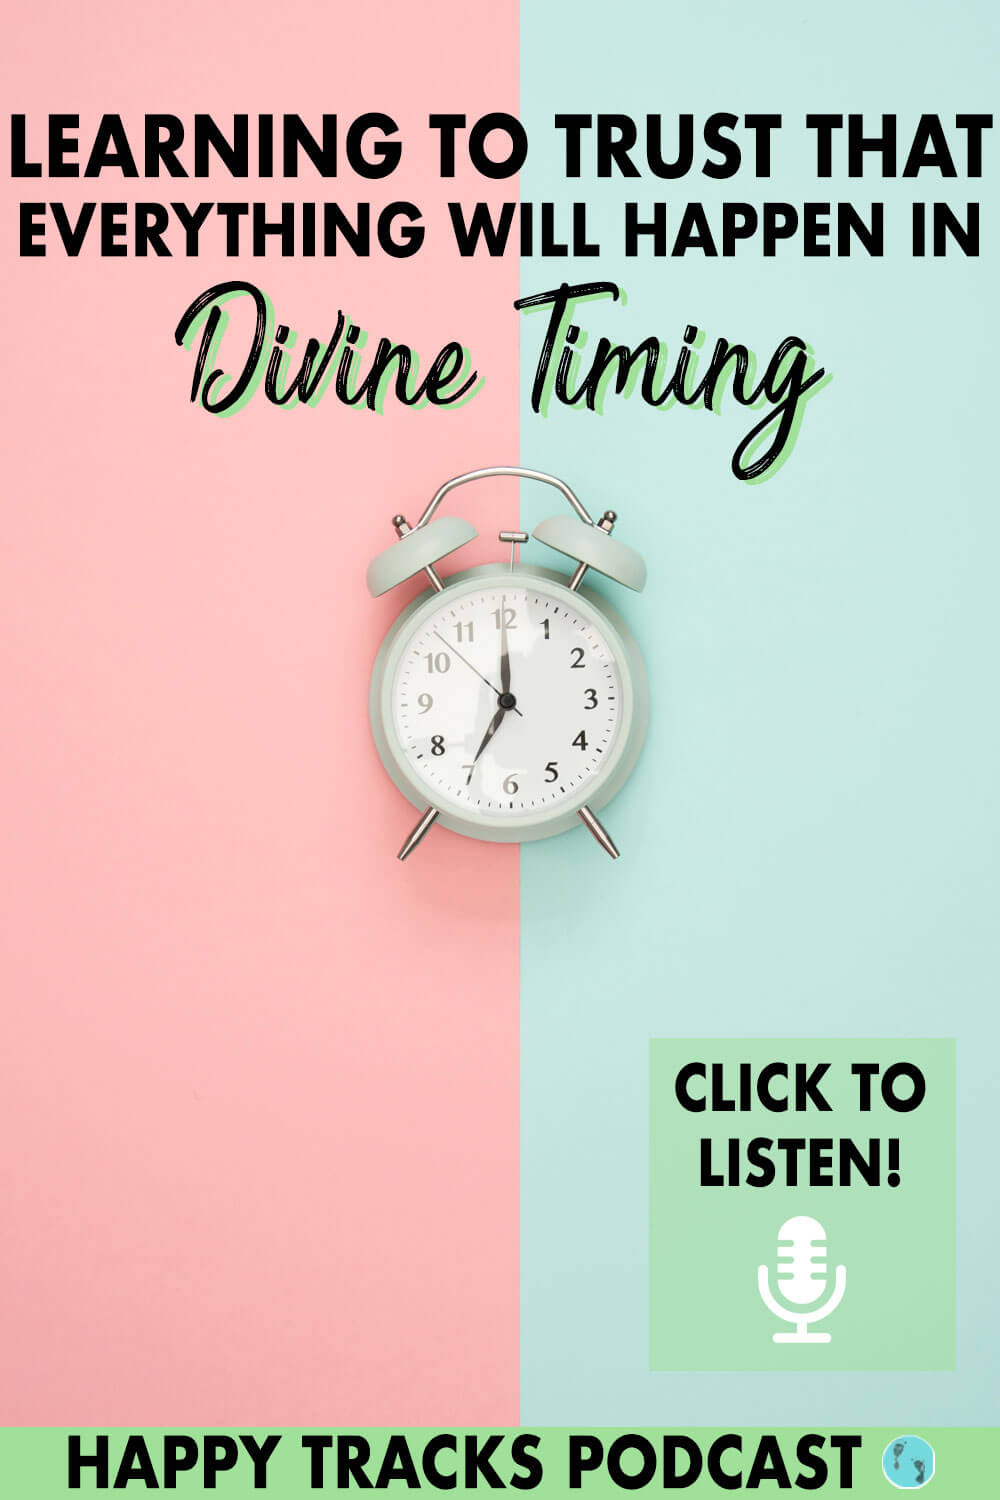 Learn what exactly divine timing is, how to know when you're ready, how to decipher hints from the universe and when it's best to take action versus surrender in this article and podcast. Click to read or listen about how everything is already working in your favour.